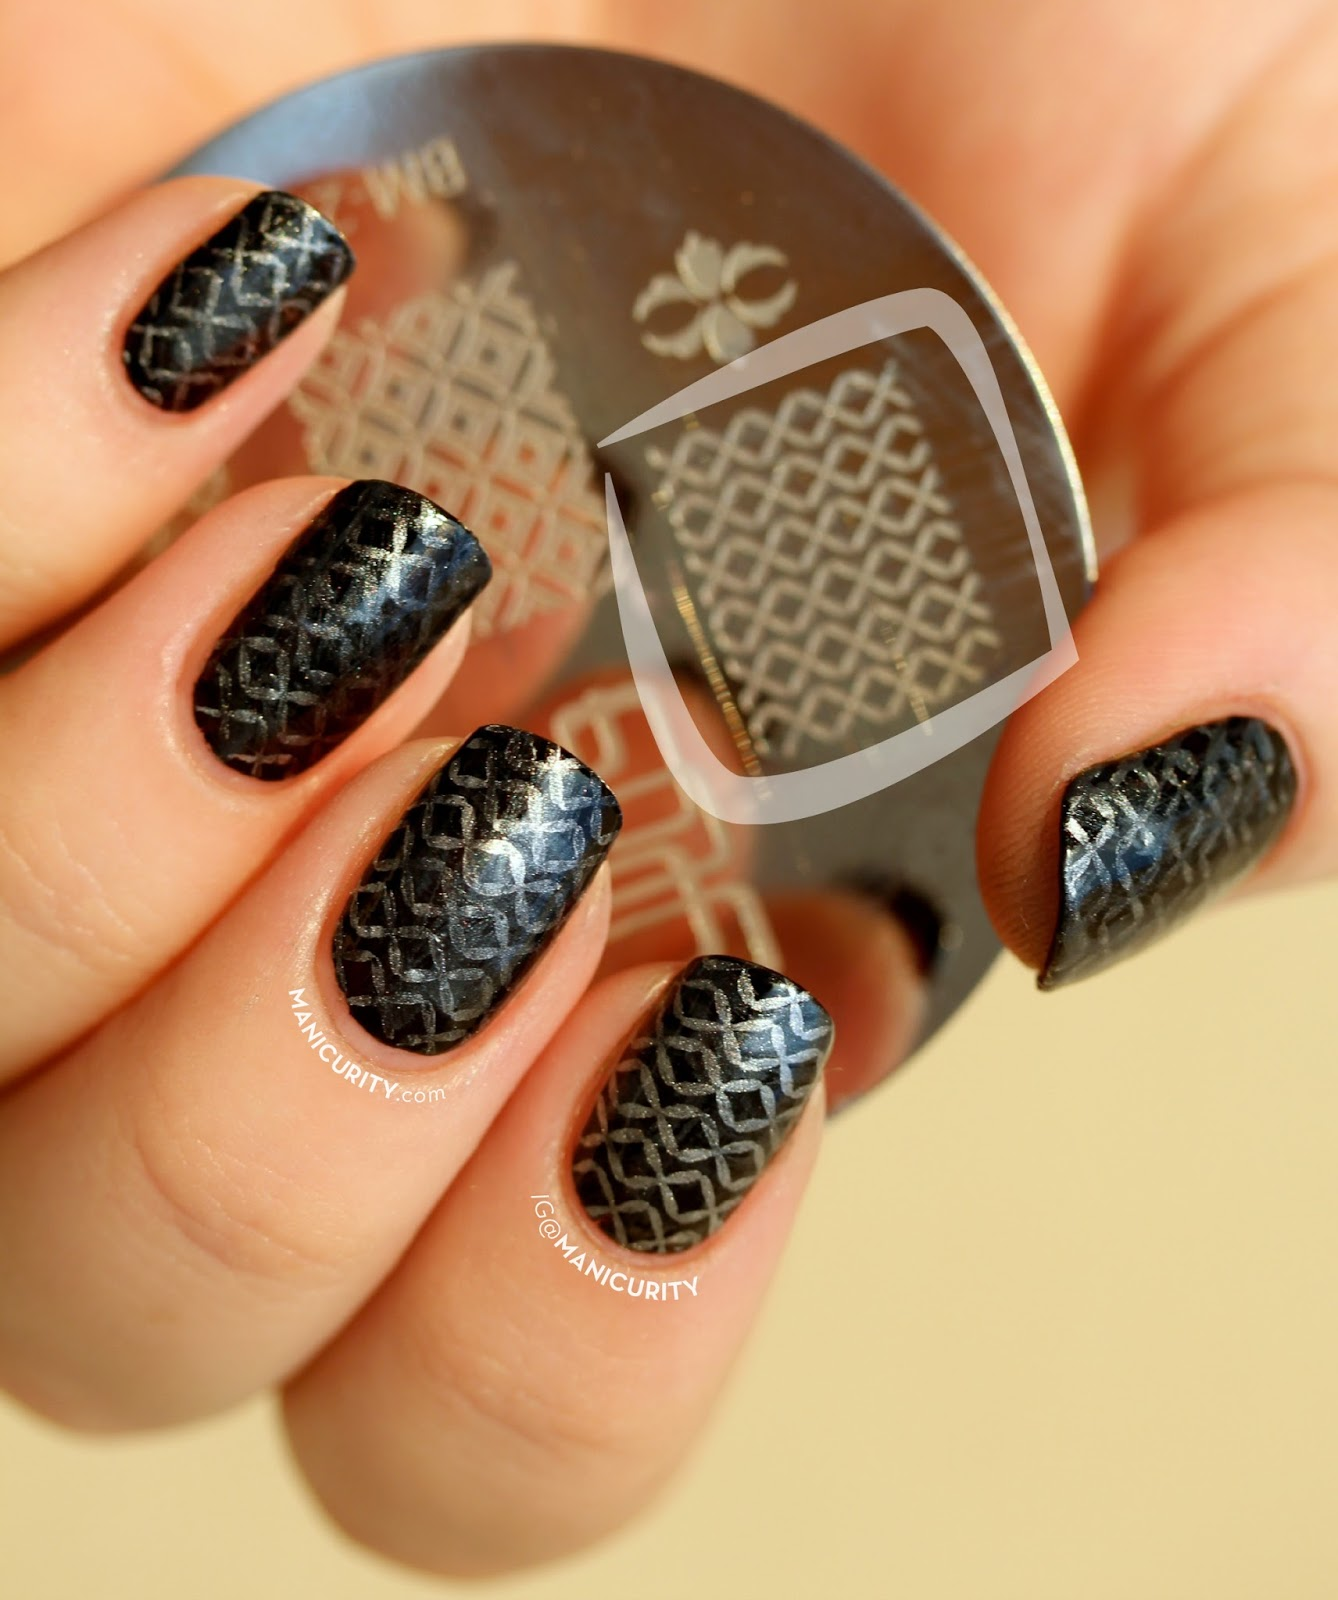 The Digit-al Dozen: Chain Mail Nail Art inspired by Game of Thrones - nails stamped with Bundle Monster BM 203, Cult Nails Fetish, Sally Hansen Xtreme Wear Gunmetal, Essie Mirror Metallics No Place Like Chrome | Manicurity.com